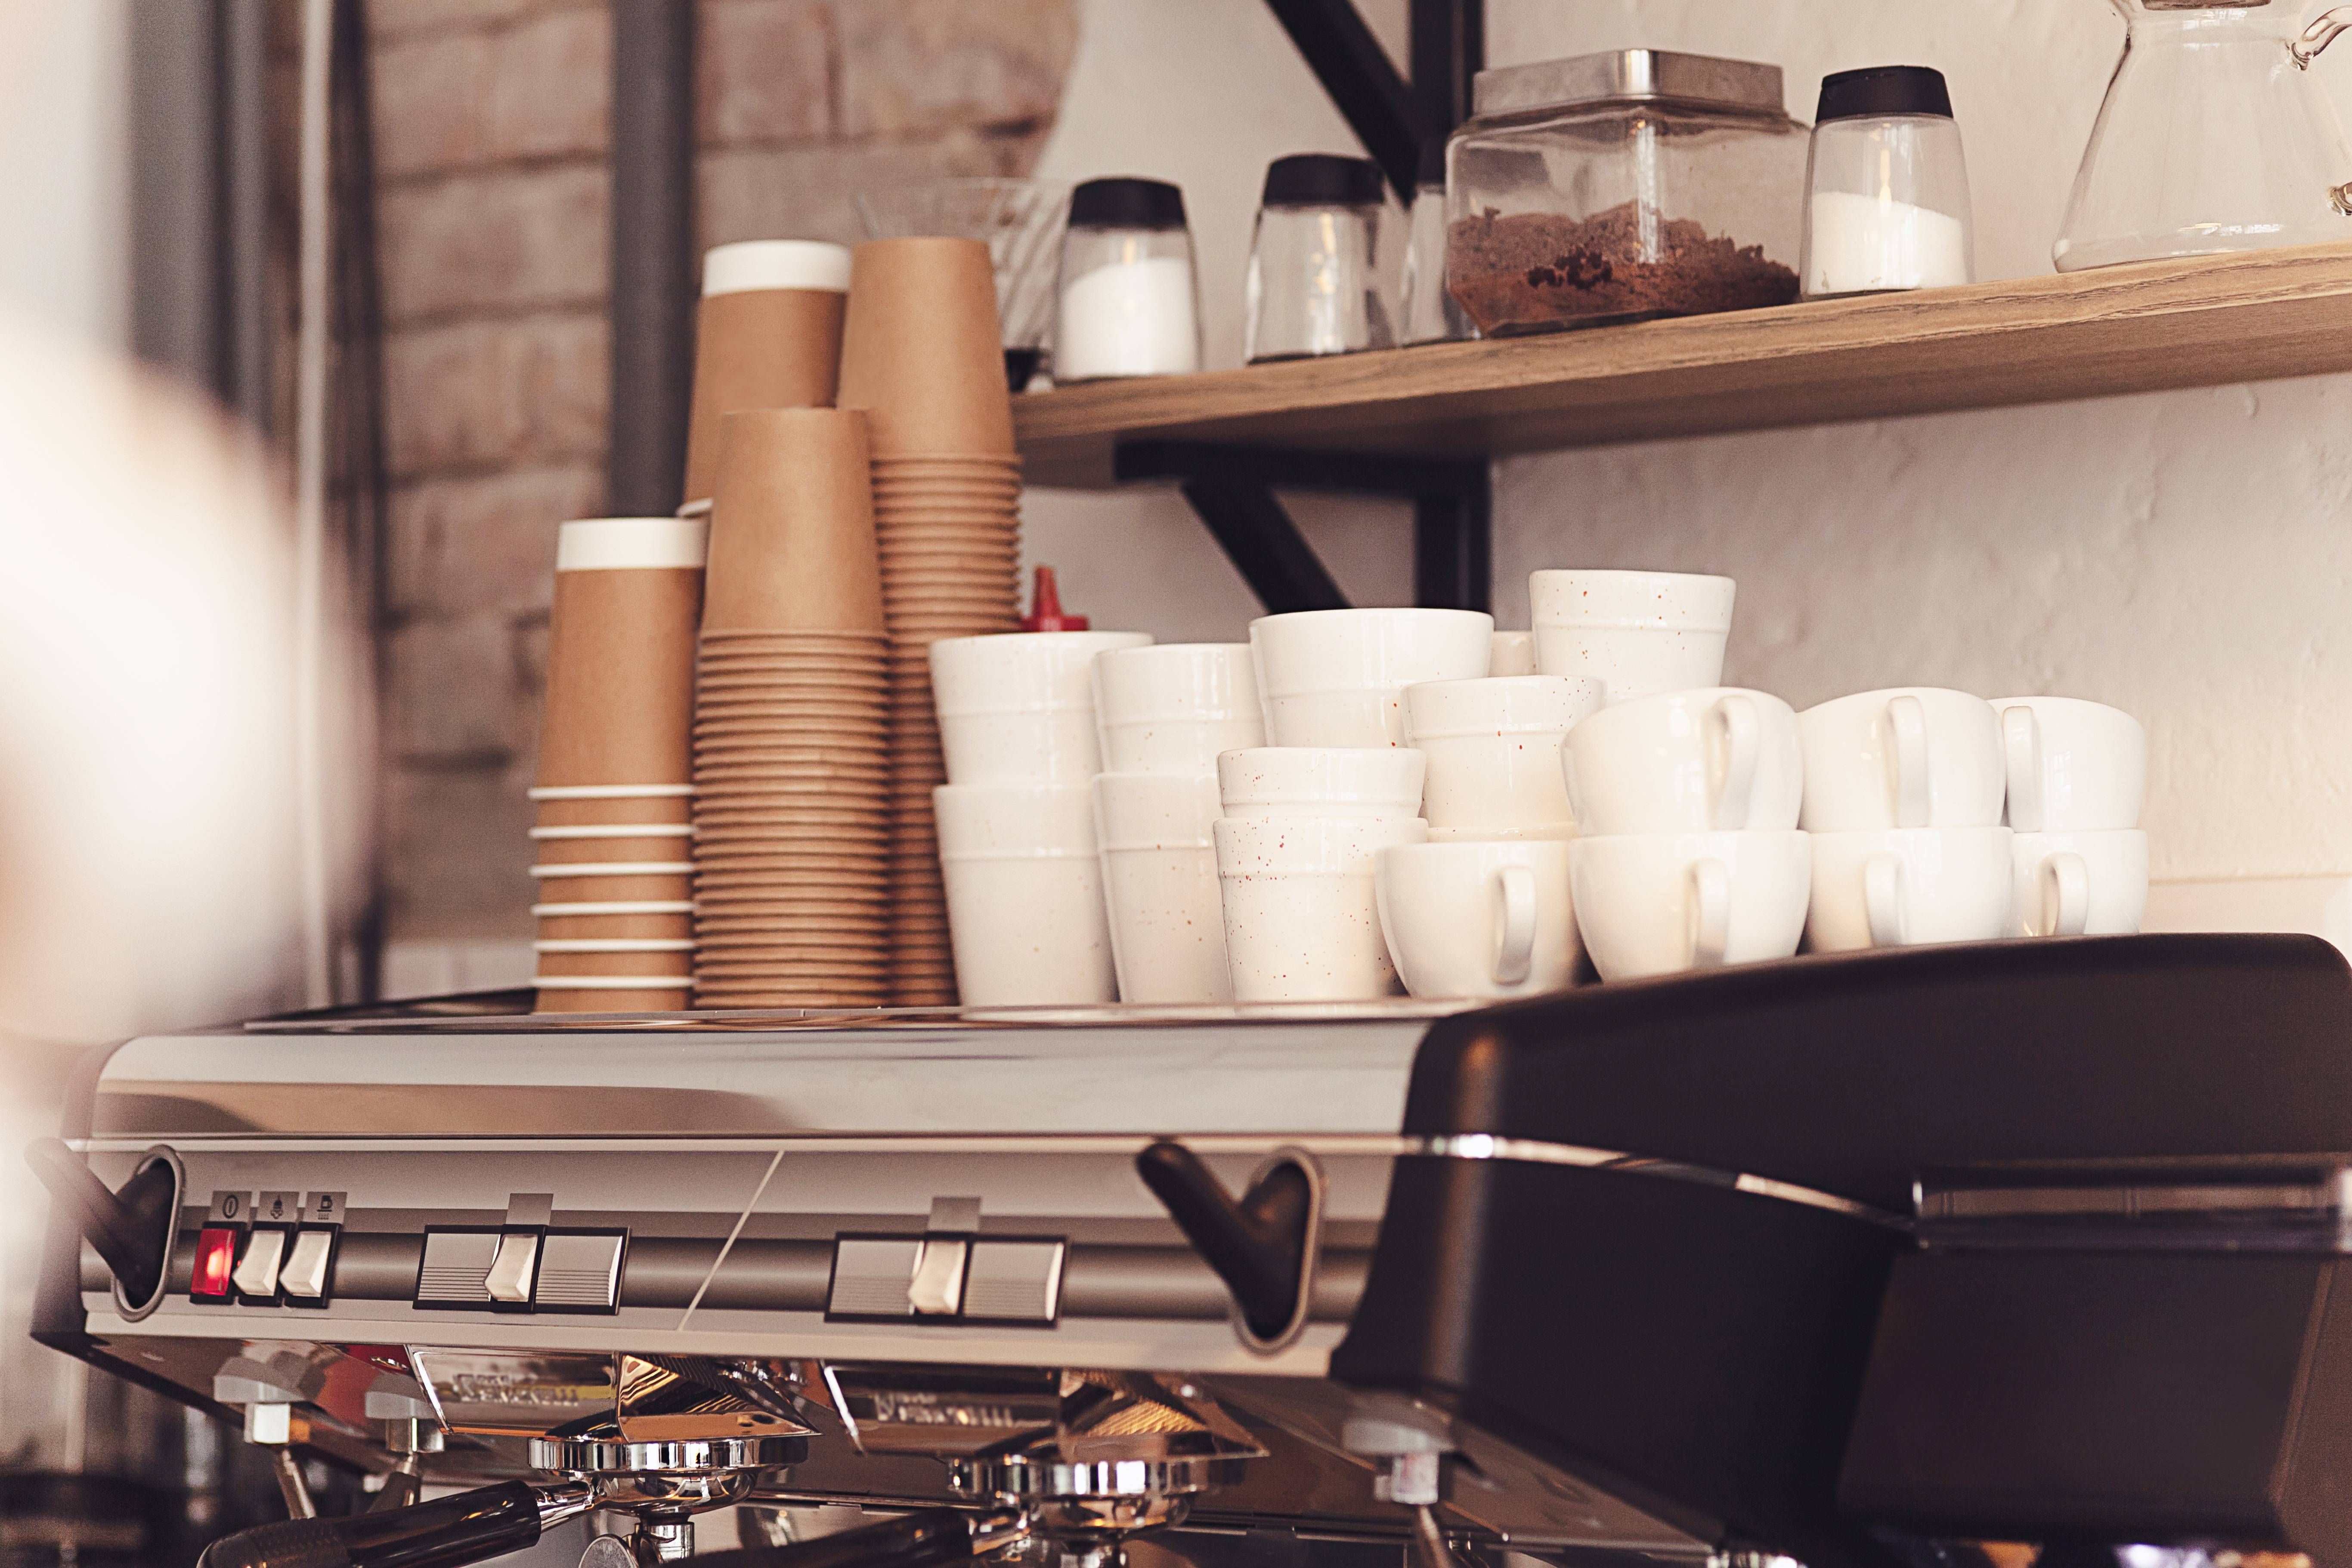 Disposable coffee cups stacked on top of an espresso machine.